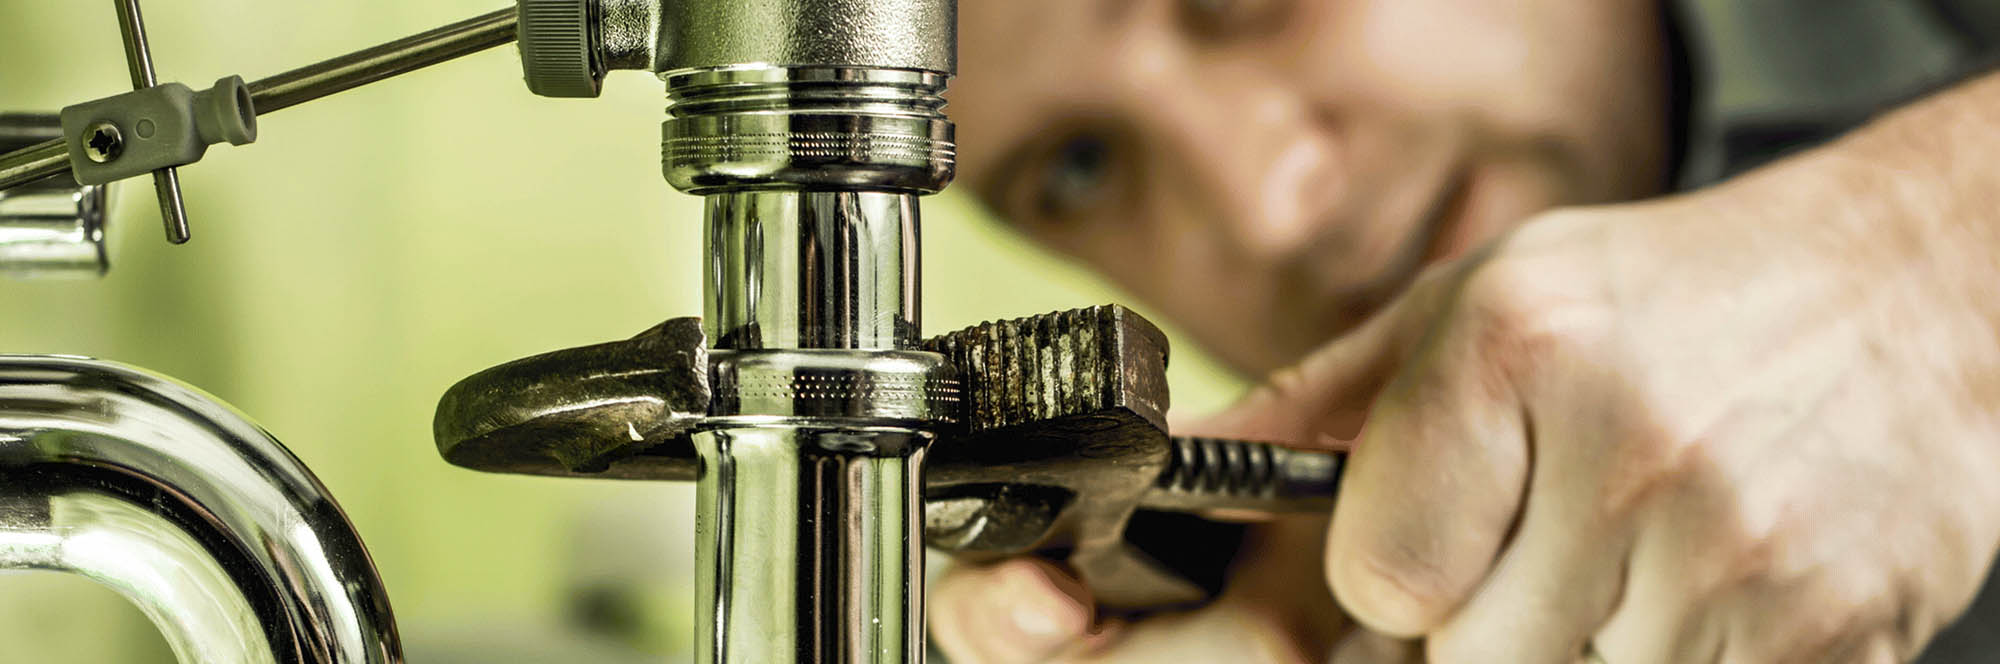 plumber Columbia SC Top Eight Reasons to Call a Professional Plumber on call heating and air 0001 Layer 1